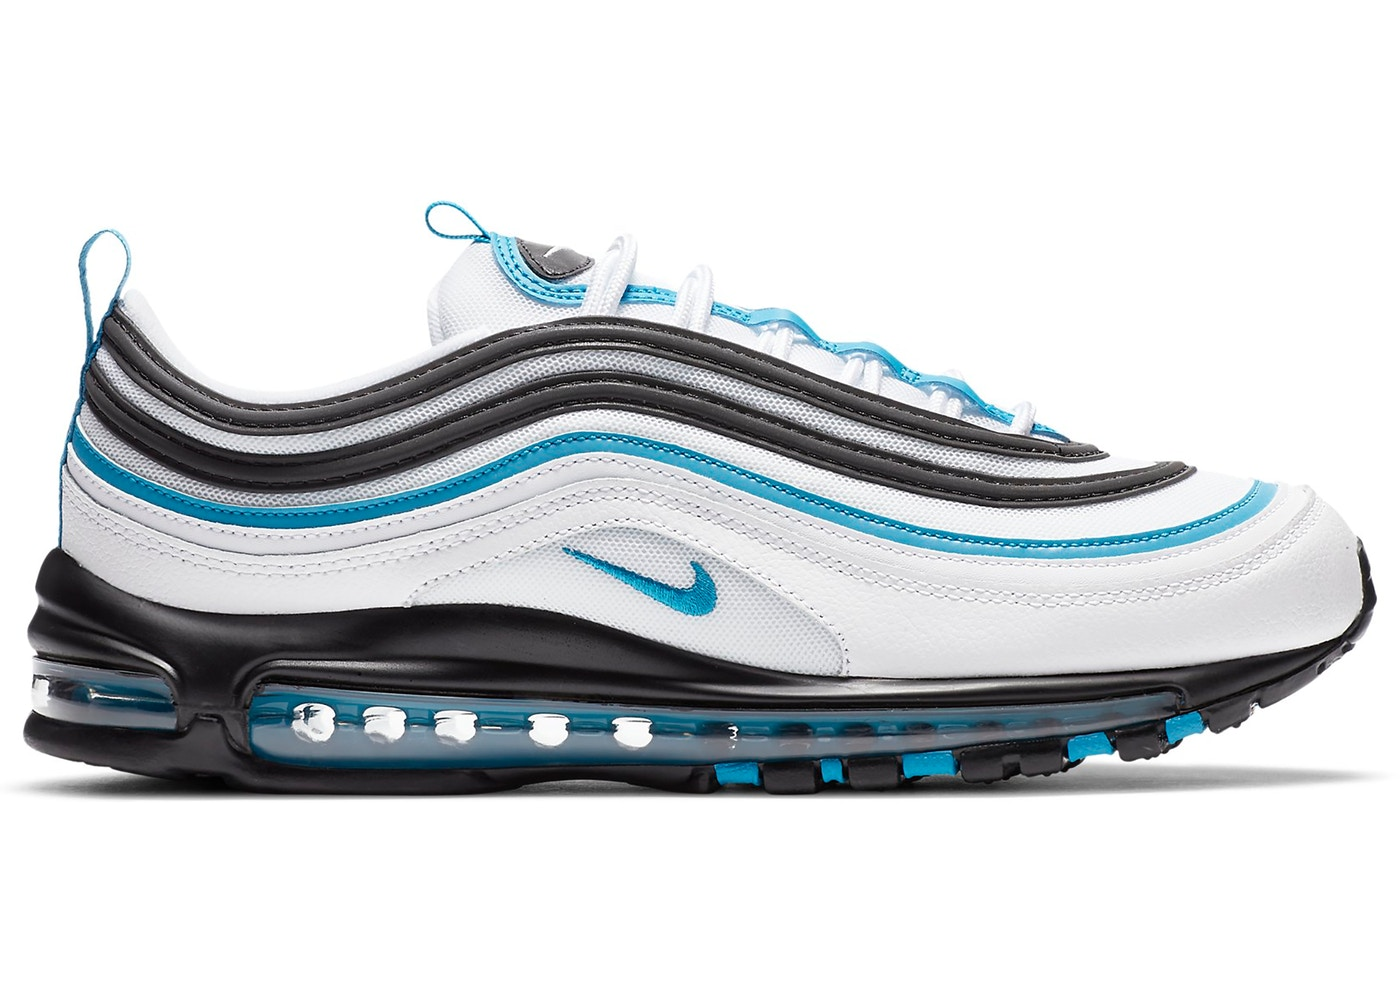 Nike Air Max 97 White Black Laser Blue Cz8682 100